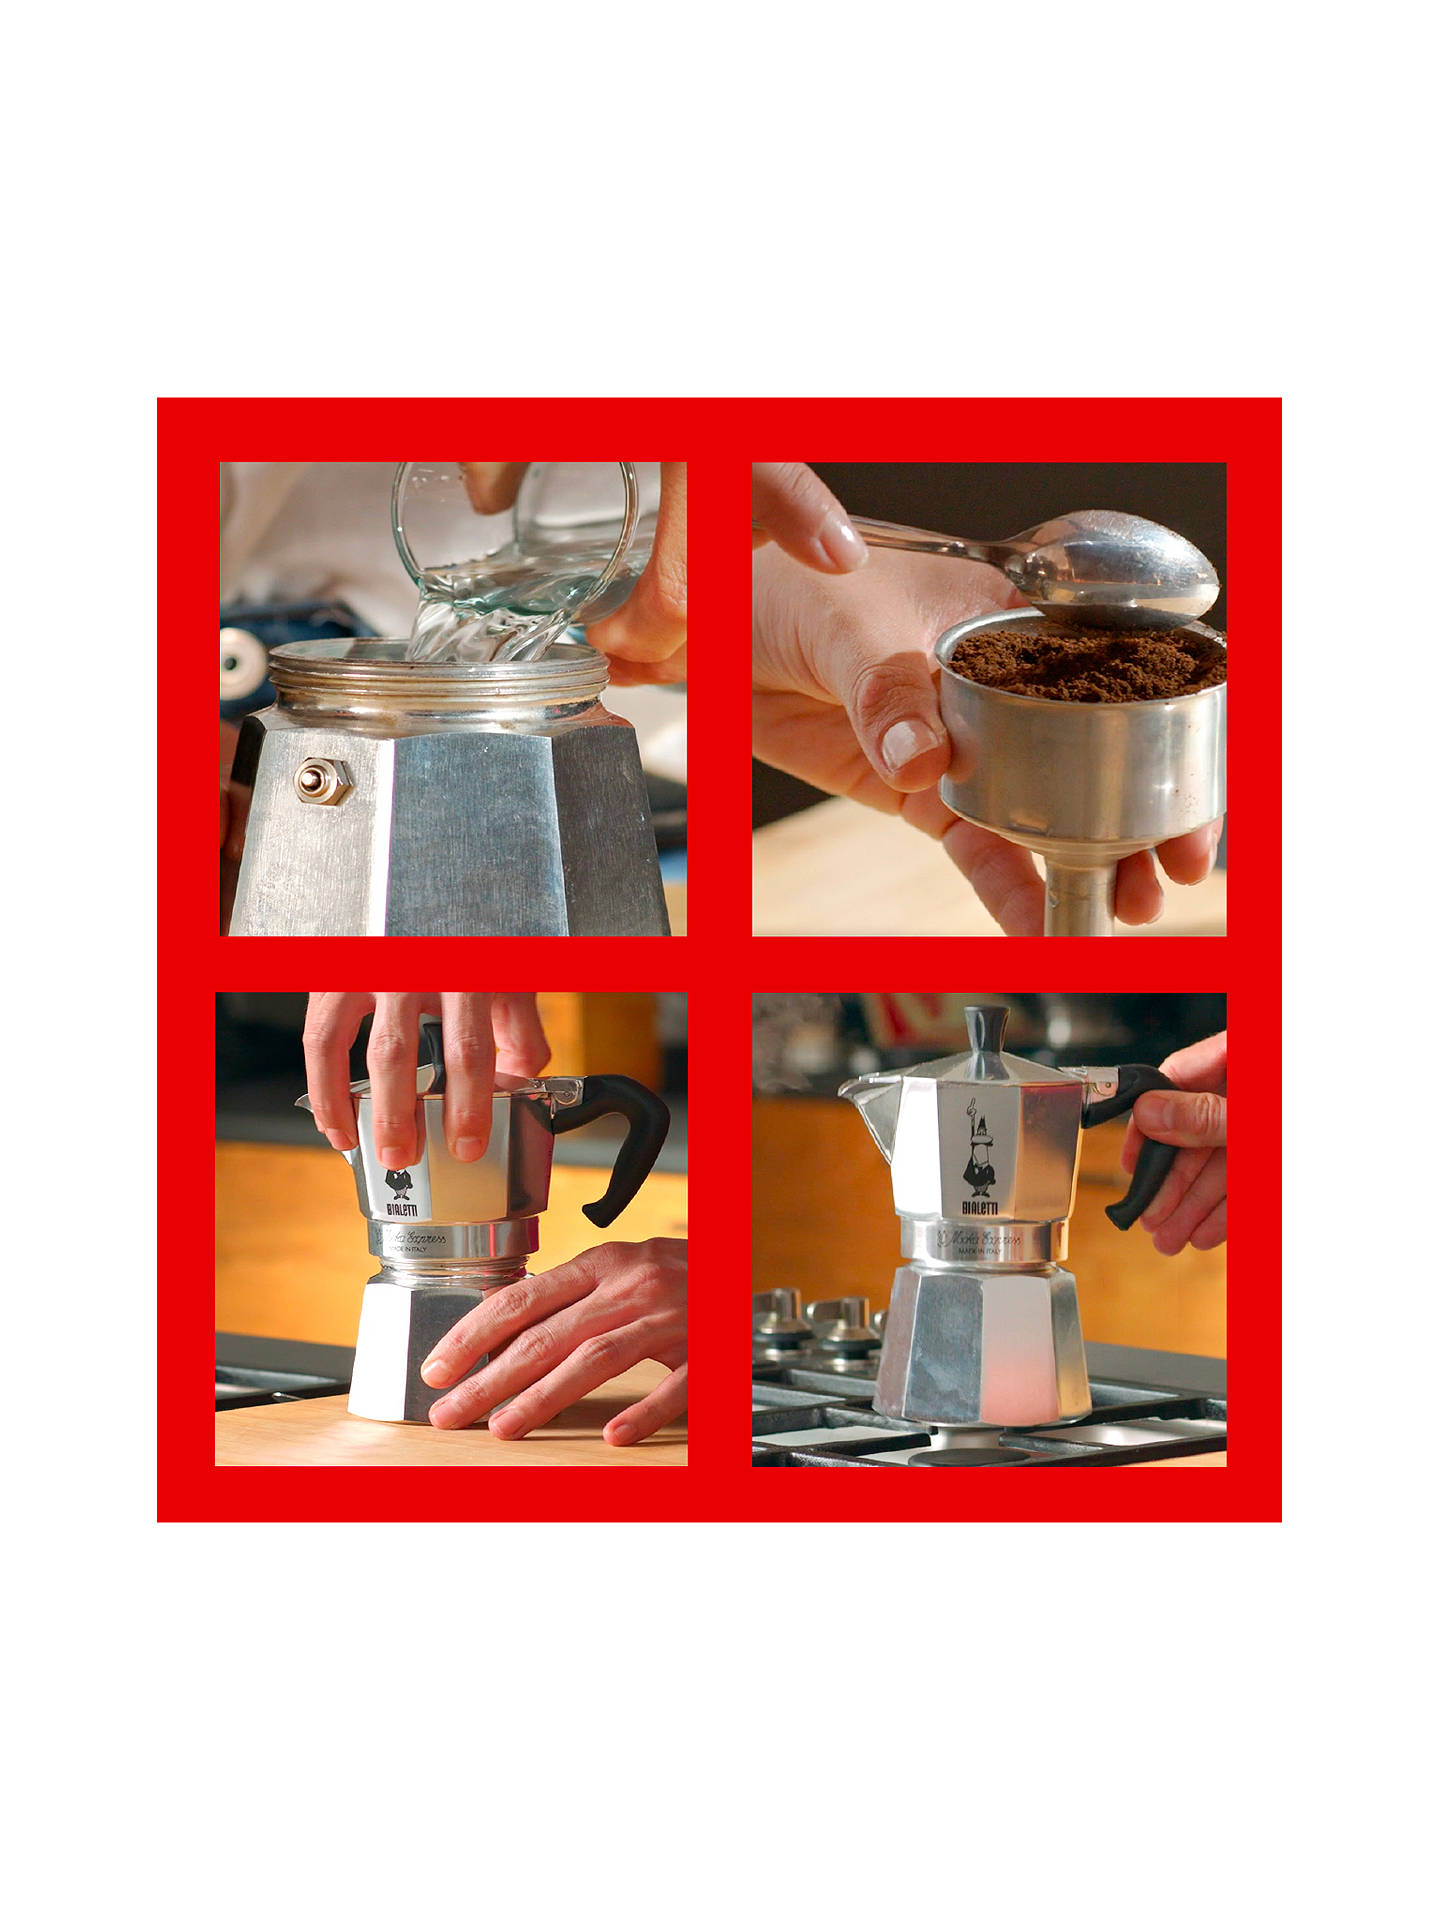 Buy Bialetti Moka Express Hob Espresso Maker, 1 Cup Online at johnlewis.com